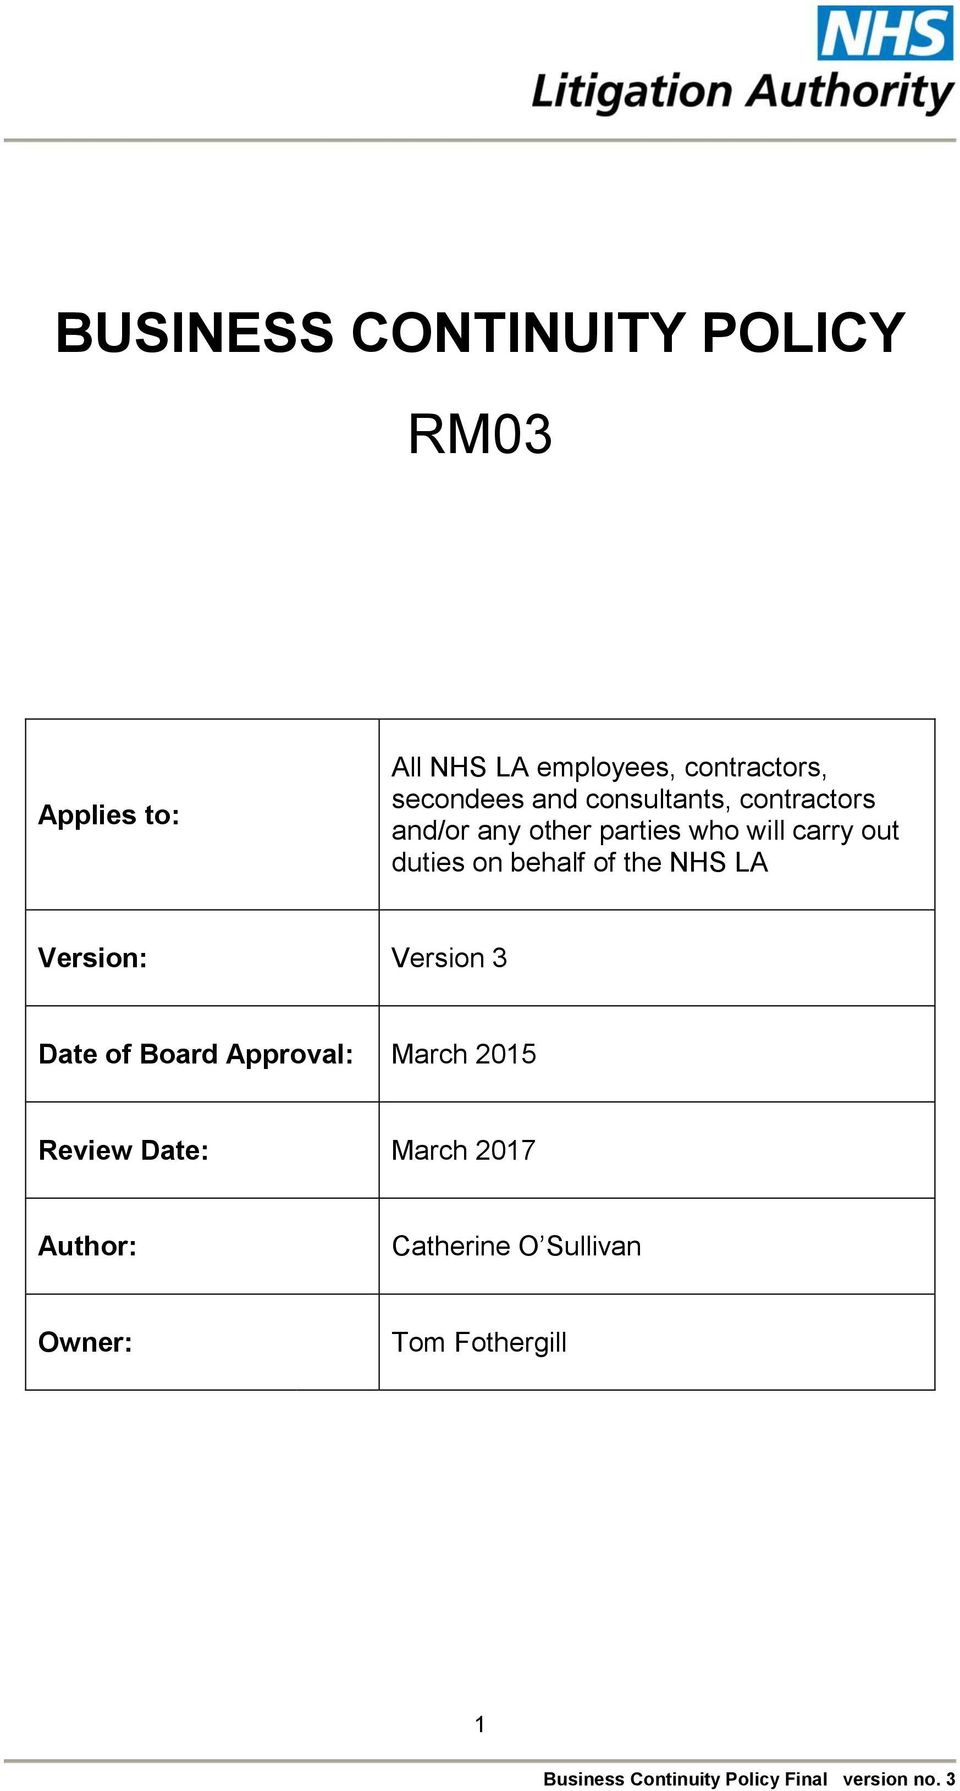 out duties on behalf of the NHS LA Version: Version 3 Date of Board Approval: